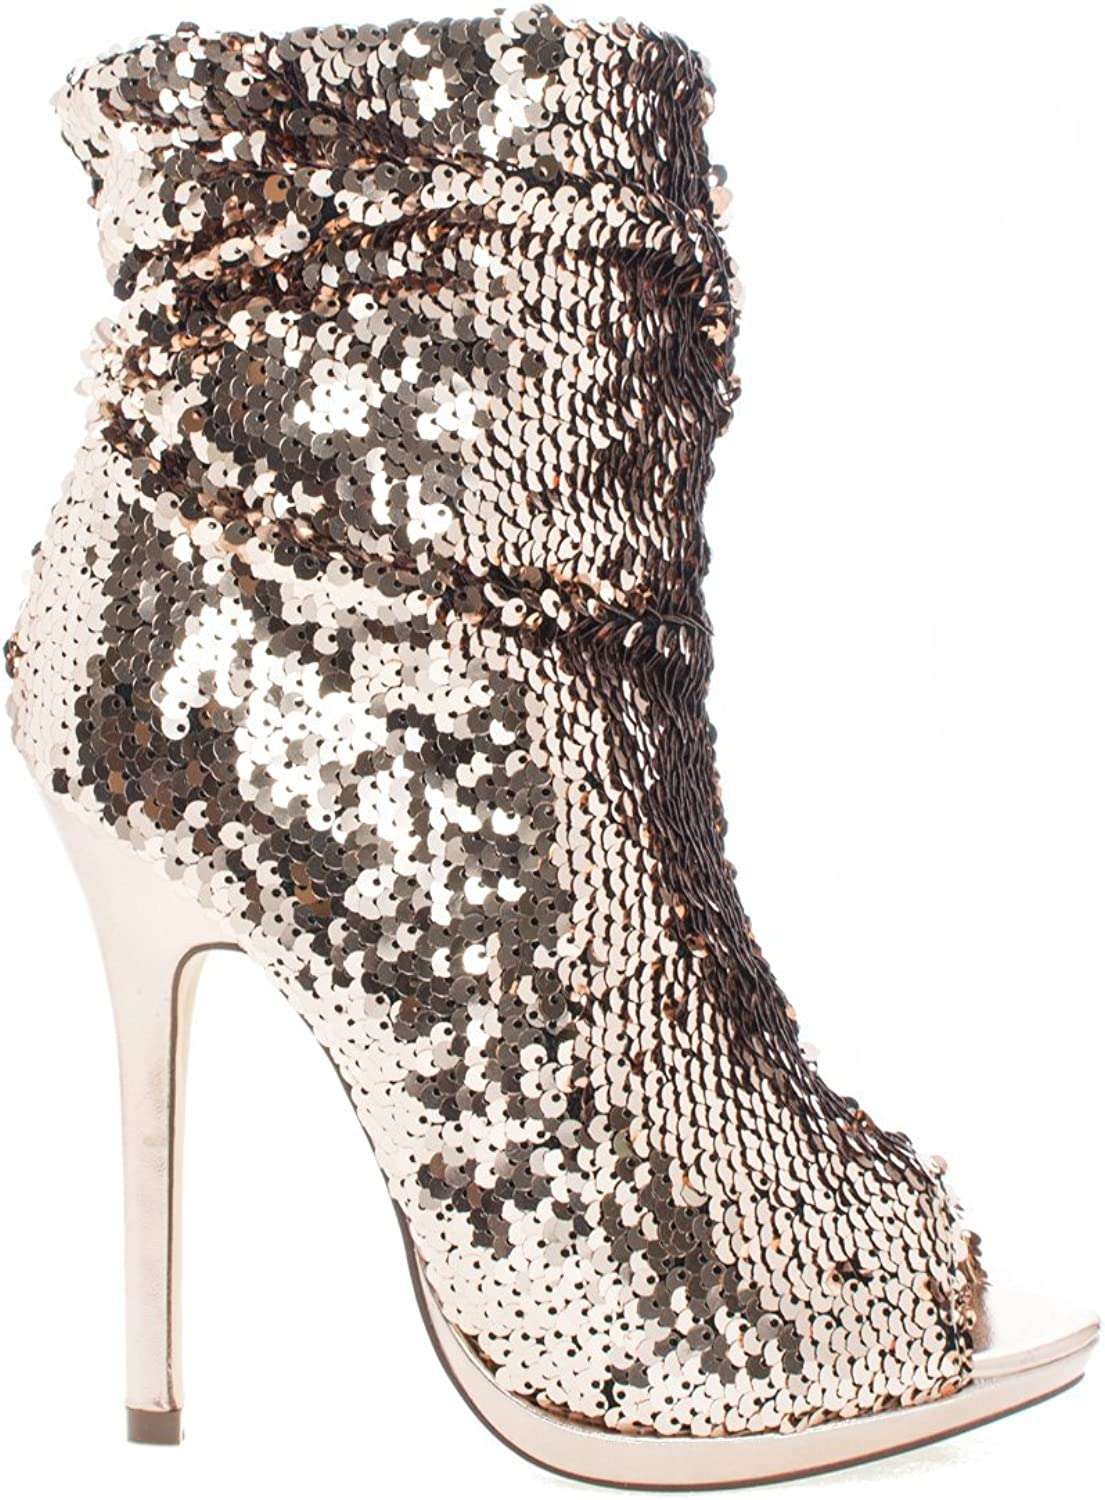 Liliana Maxim-12 Multi color Sequins Peep Toe High Heel Above Ankle Bootie